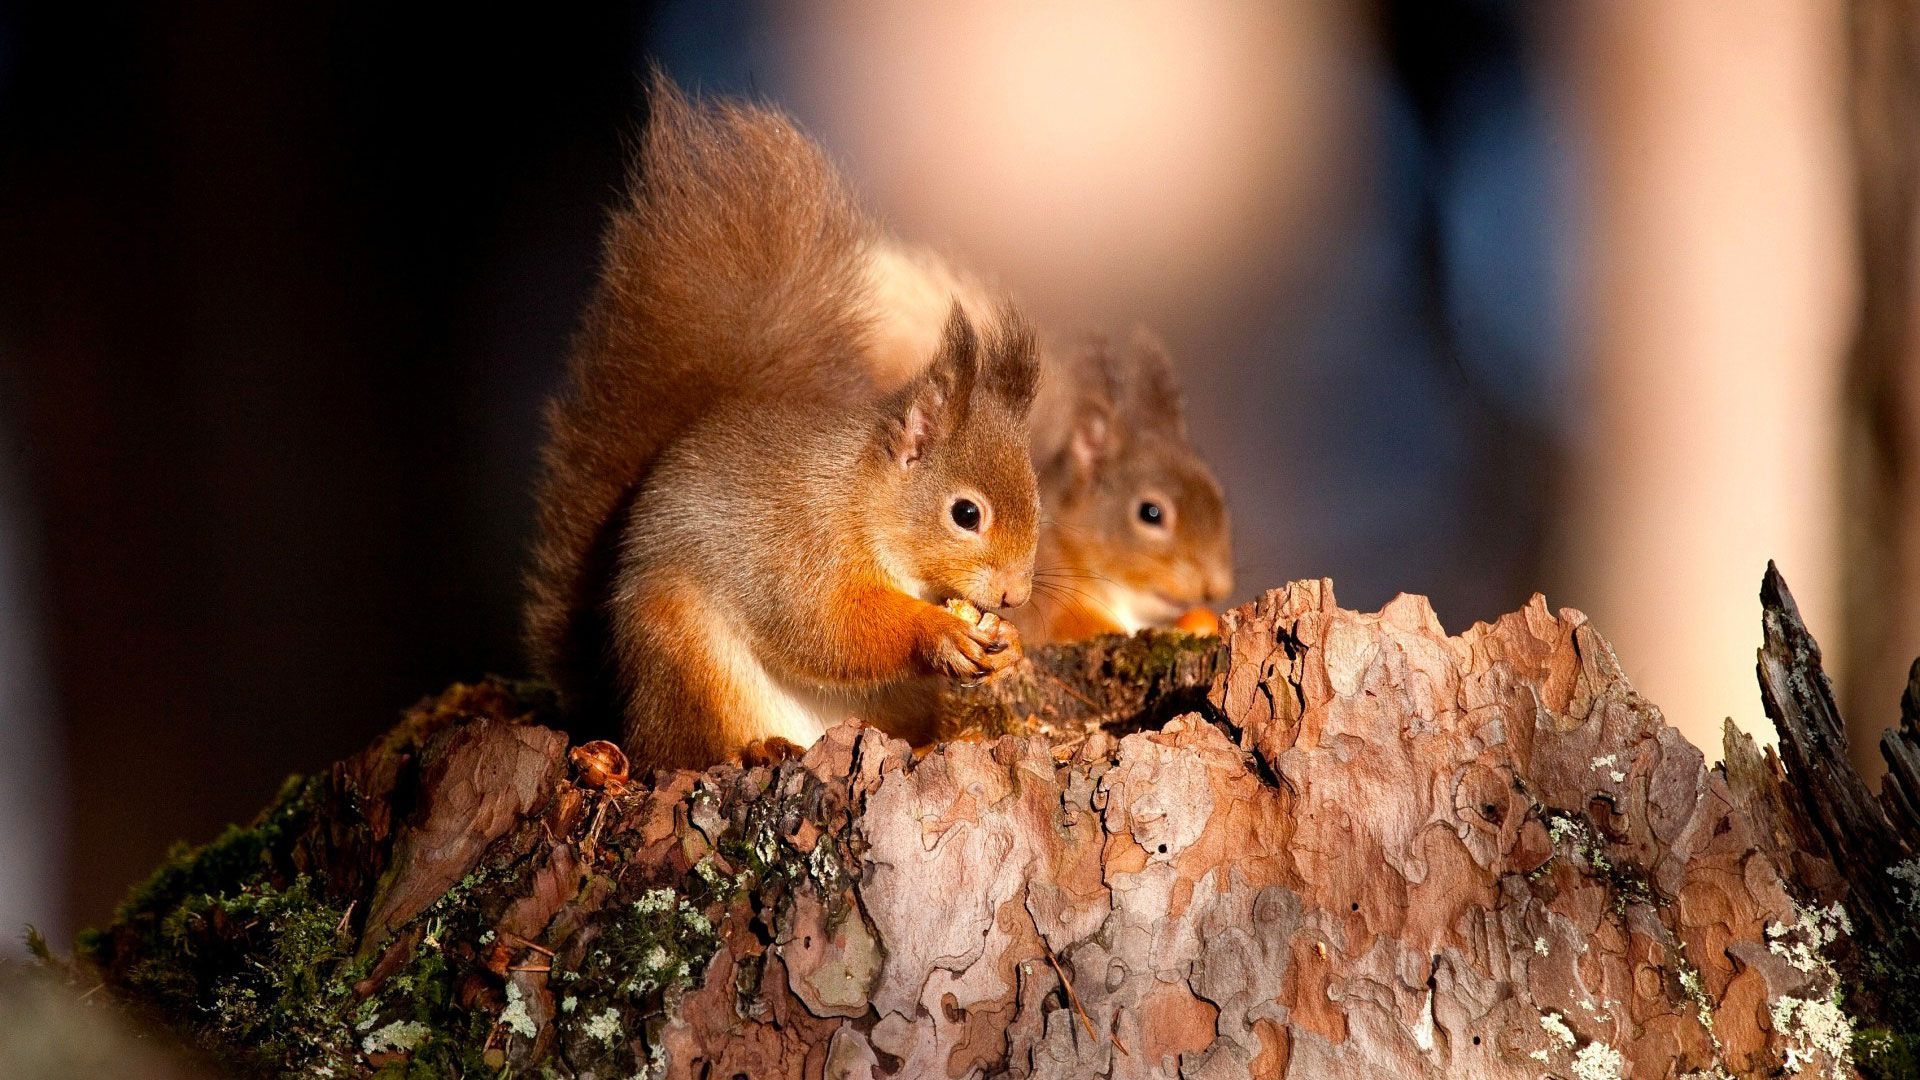 Squirrel With Cubs